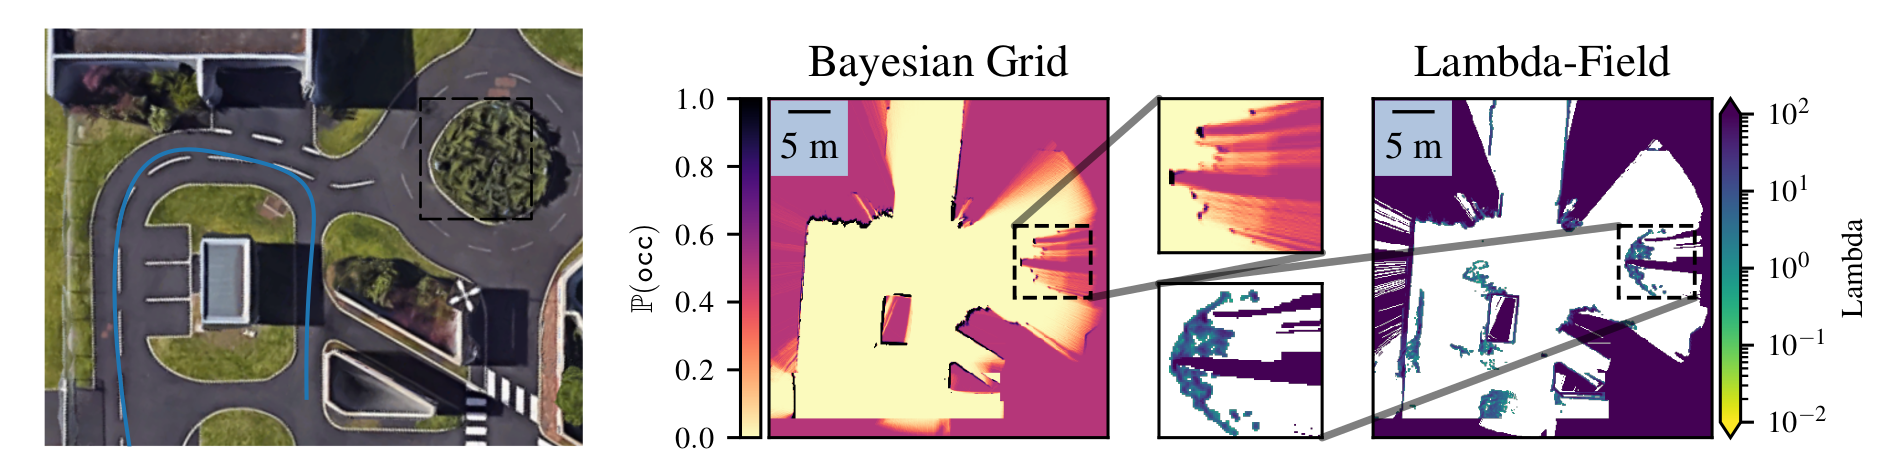 Lambda-Field: A Continuous Counterpart of the Bayesian Occupancy Grid for Risk Assessment